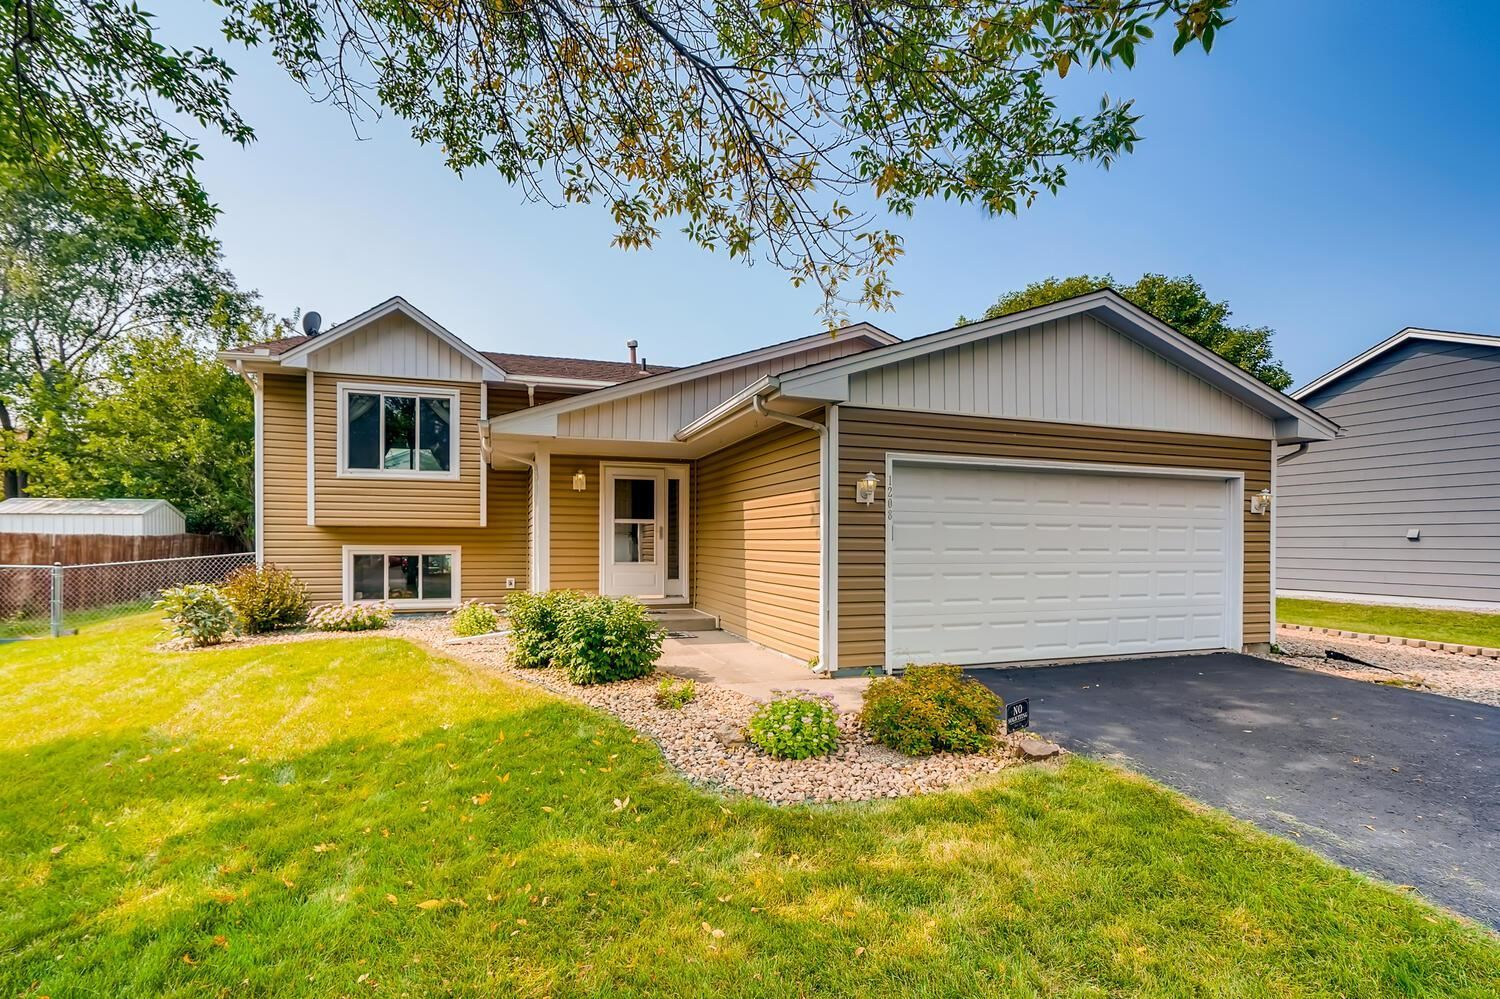 1208 Vierling Court, Shakopee, MN 55379 - MLS#: 5654619